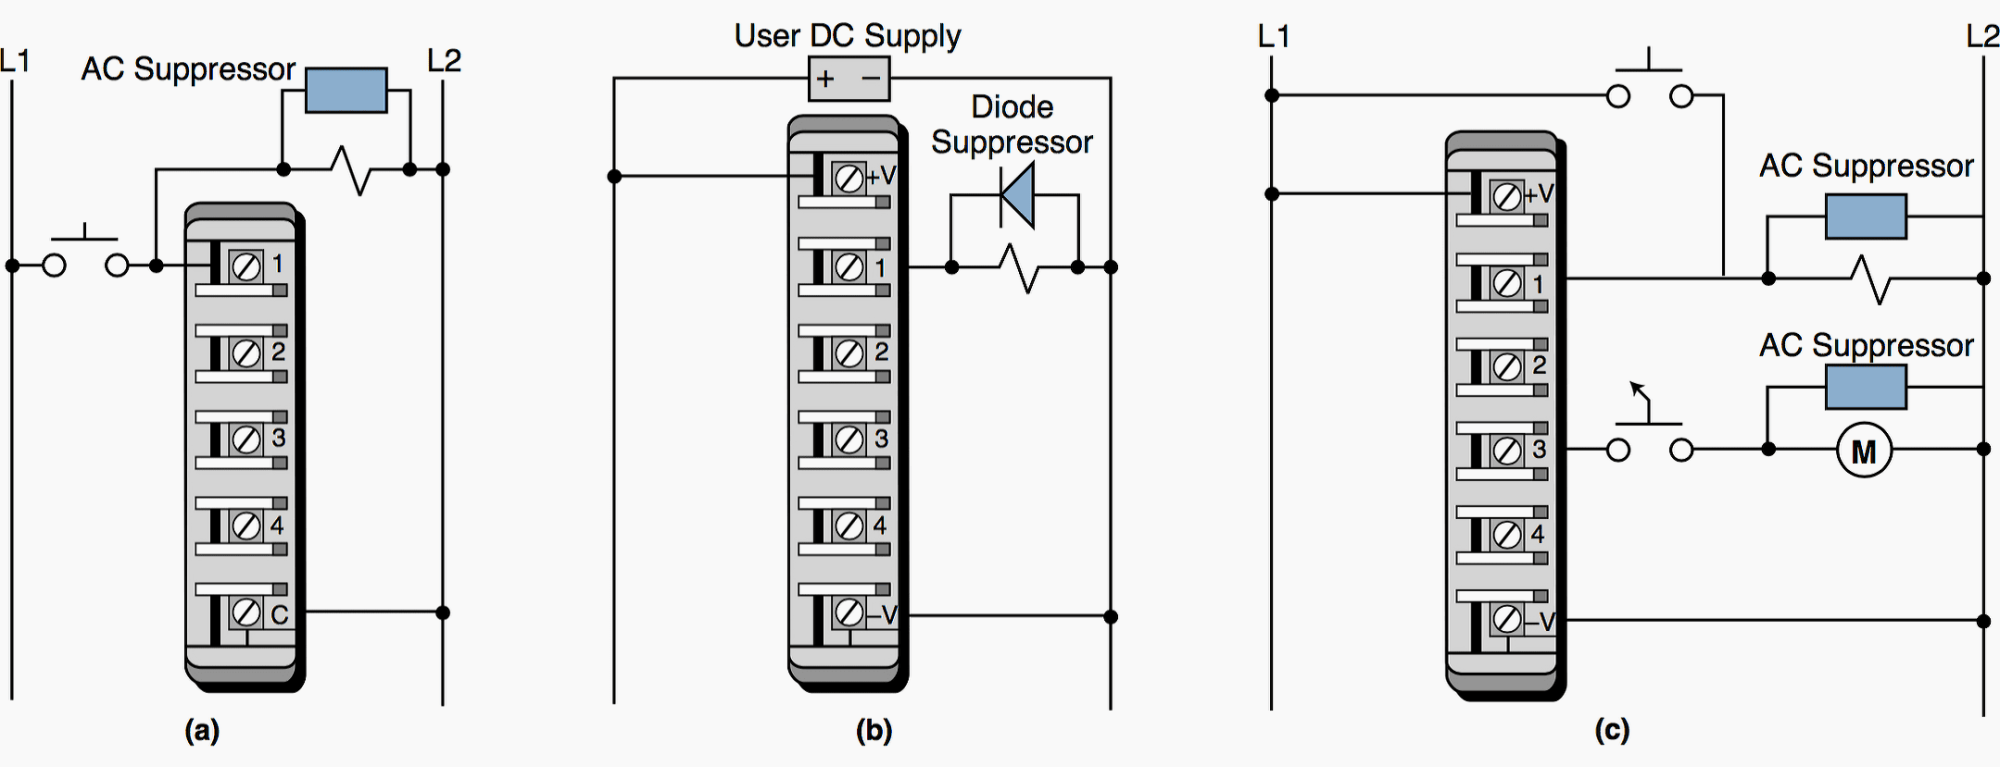 hight resolution of guidelines for plc installation wiring and connection precautions eepsuppression of a a load